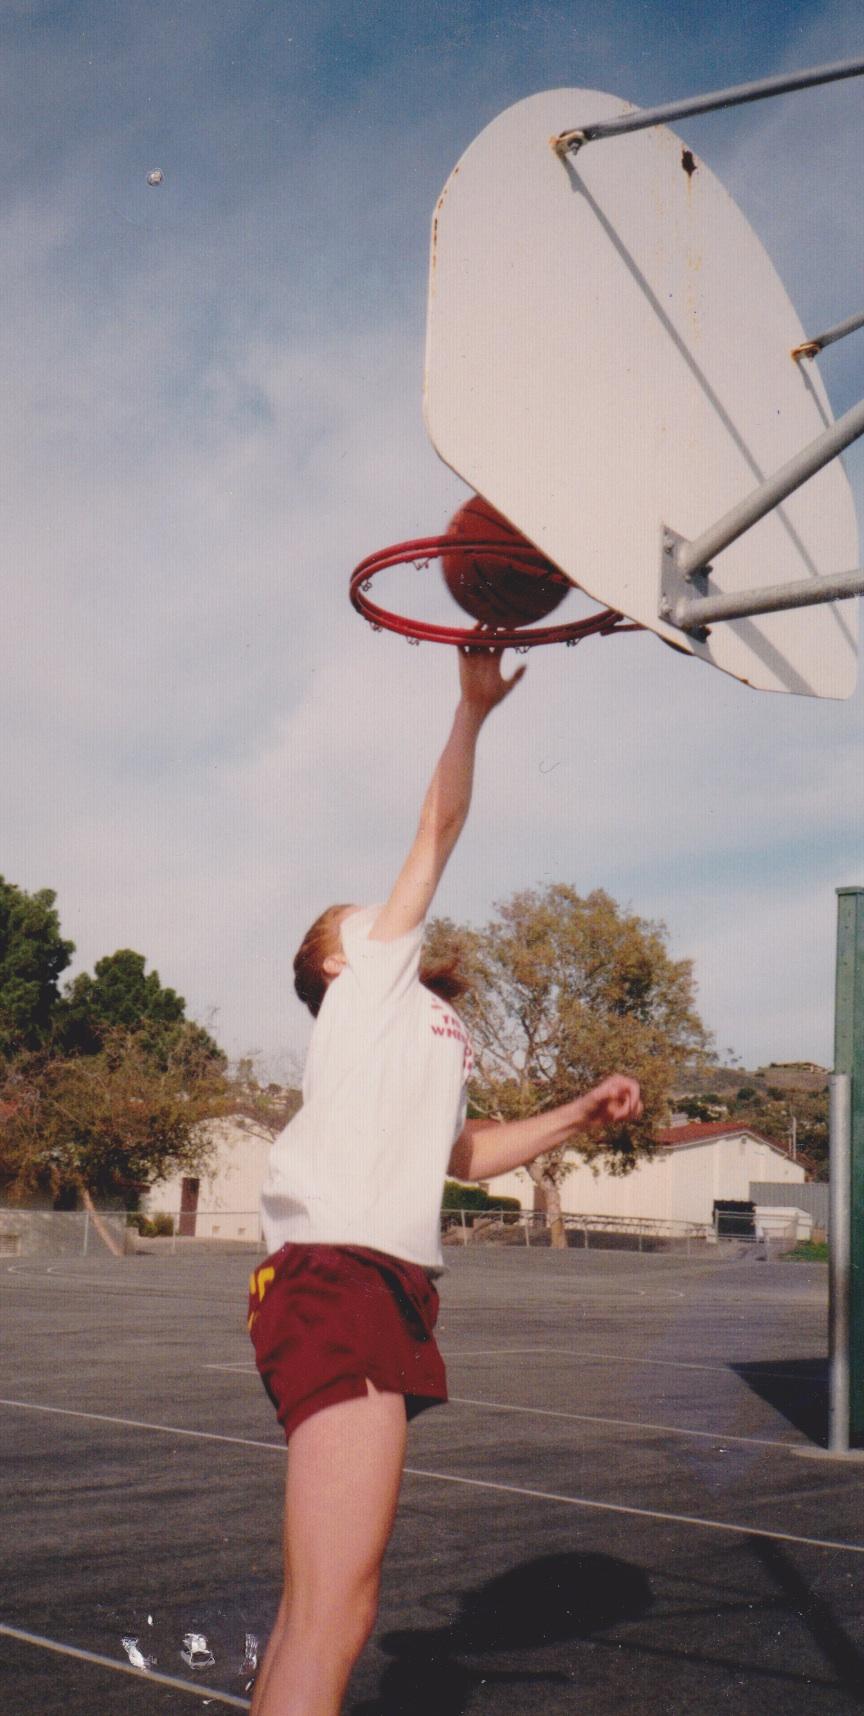 My late 90's Baller days